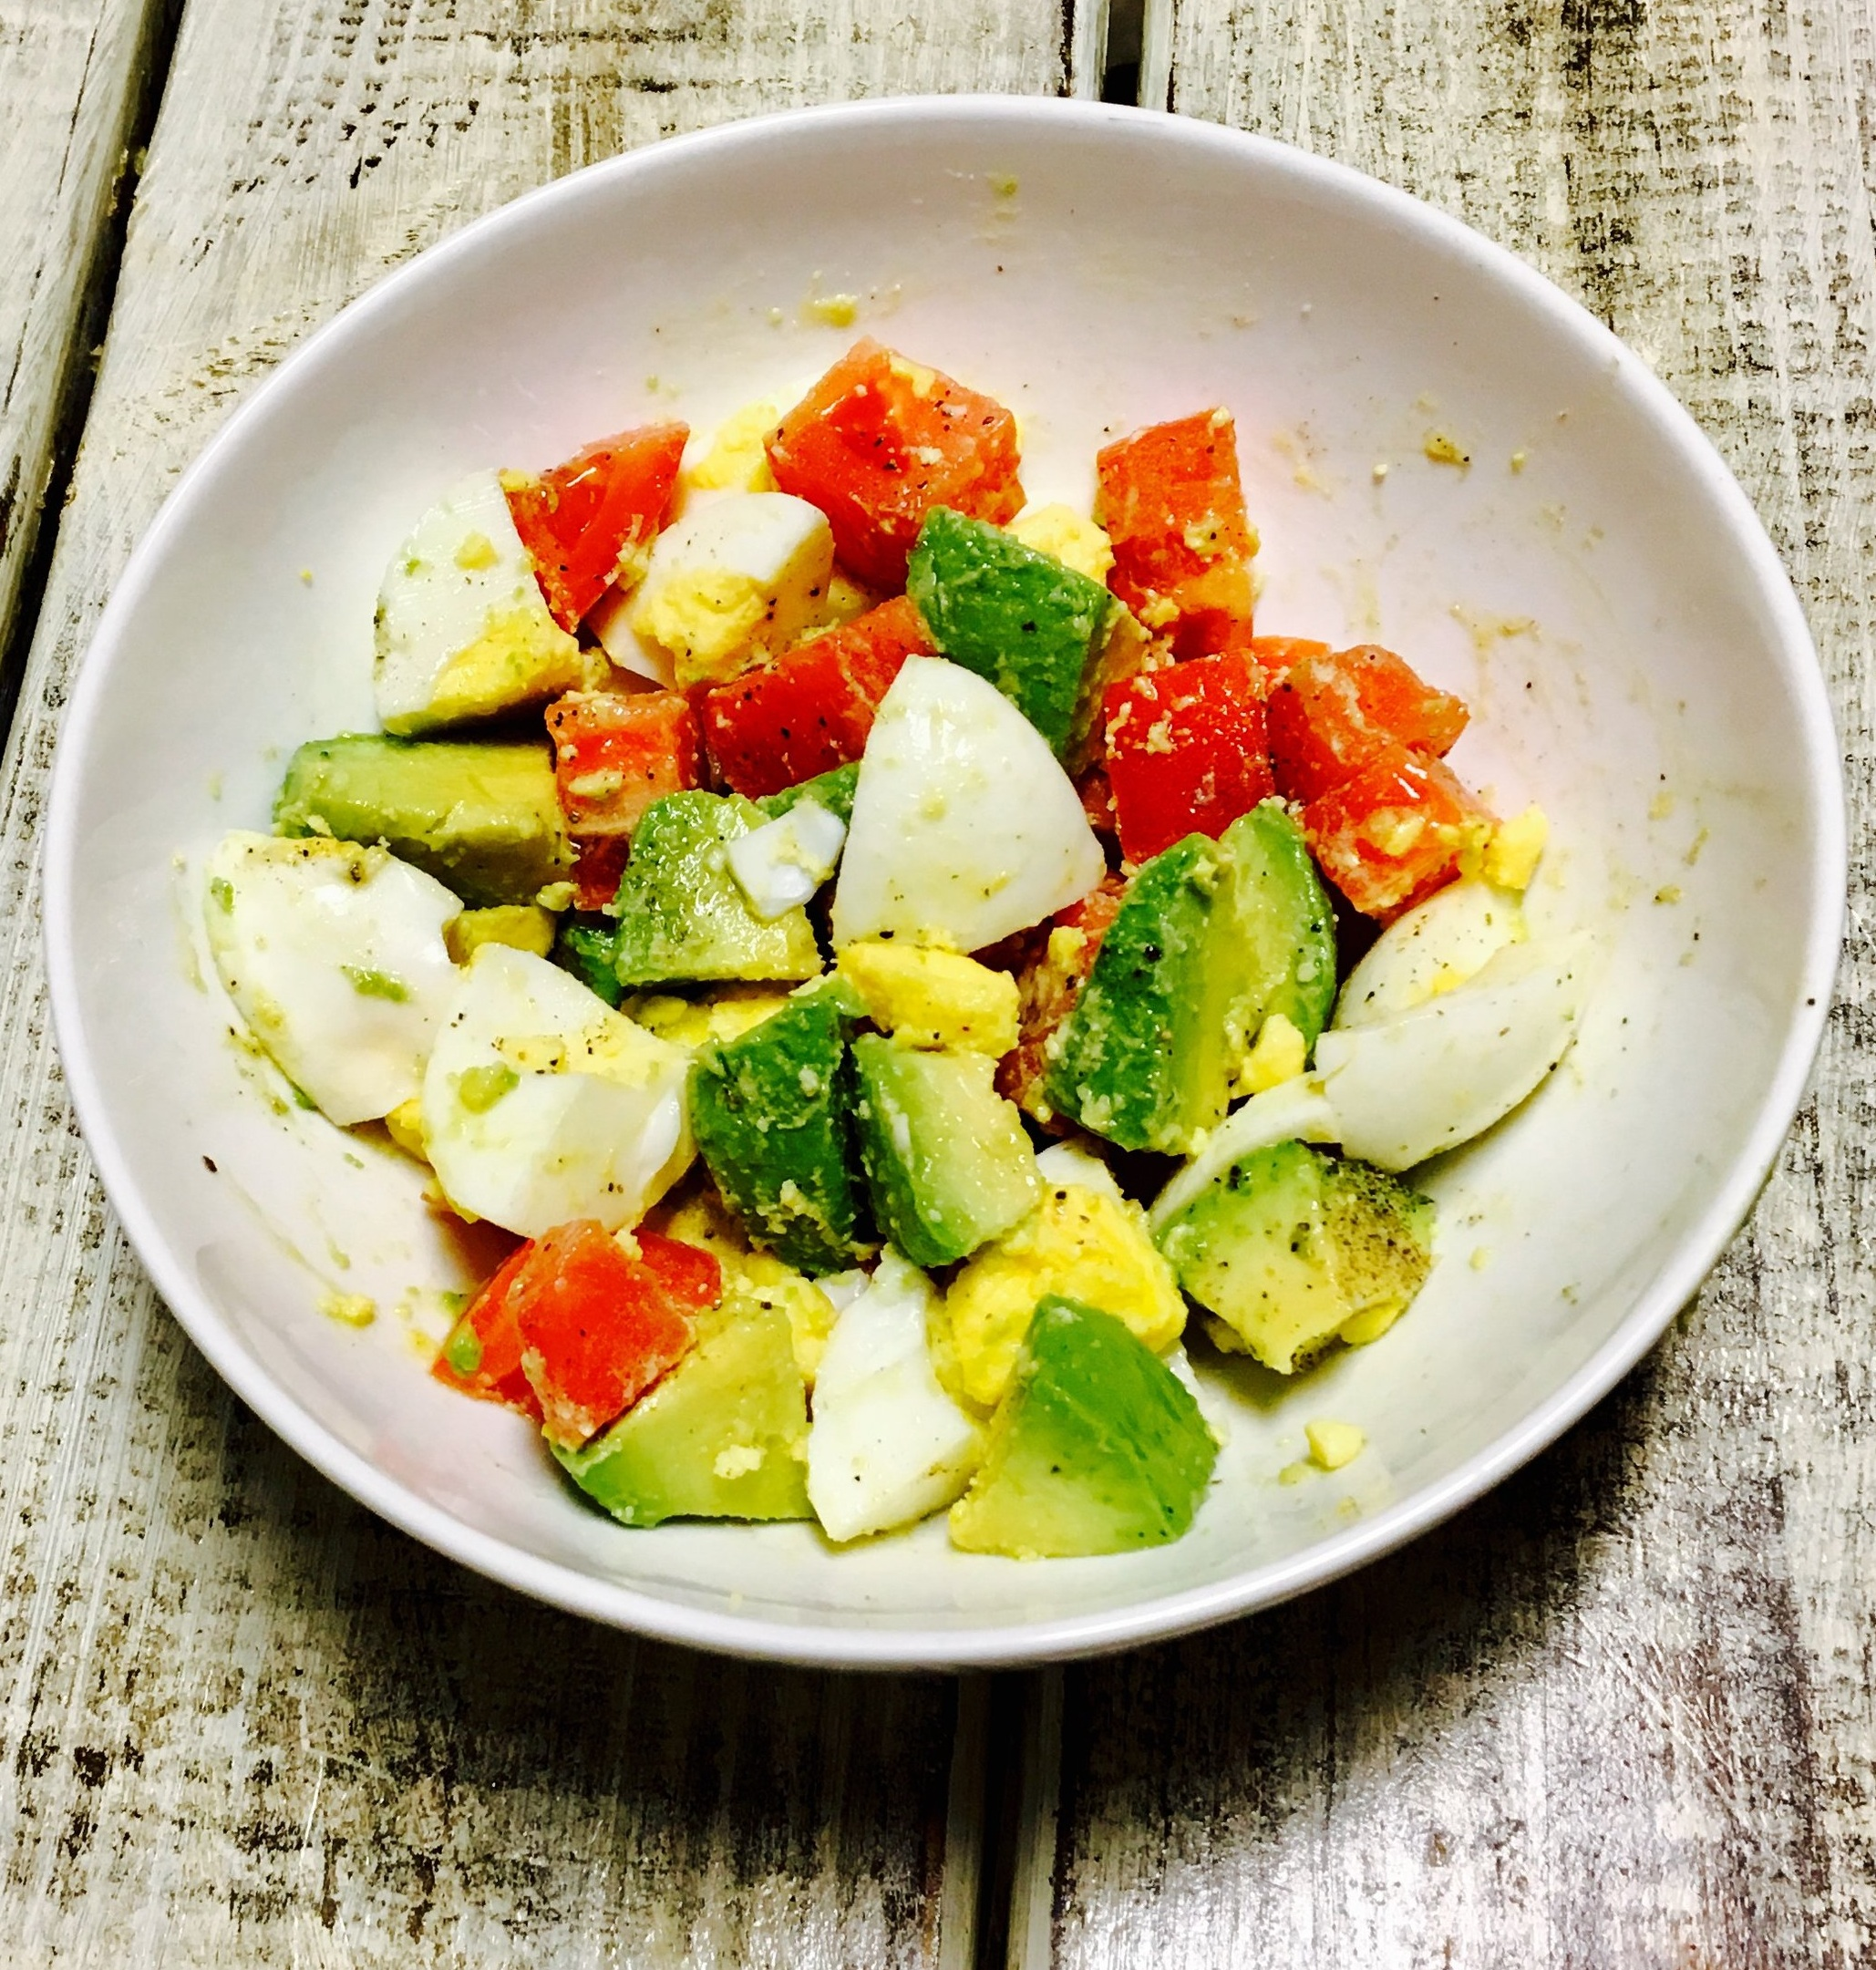 Breakfast option: 2 boiled eggs, 1/2 an avocado, 1 tomato, with a drizzle of olive oil and salt and pepper.